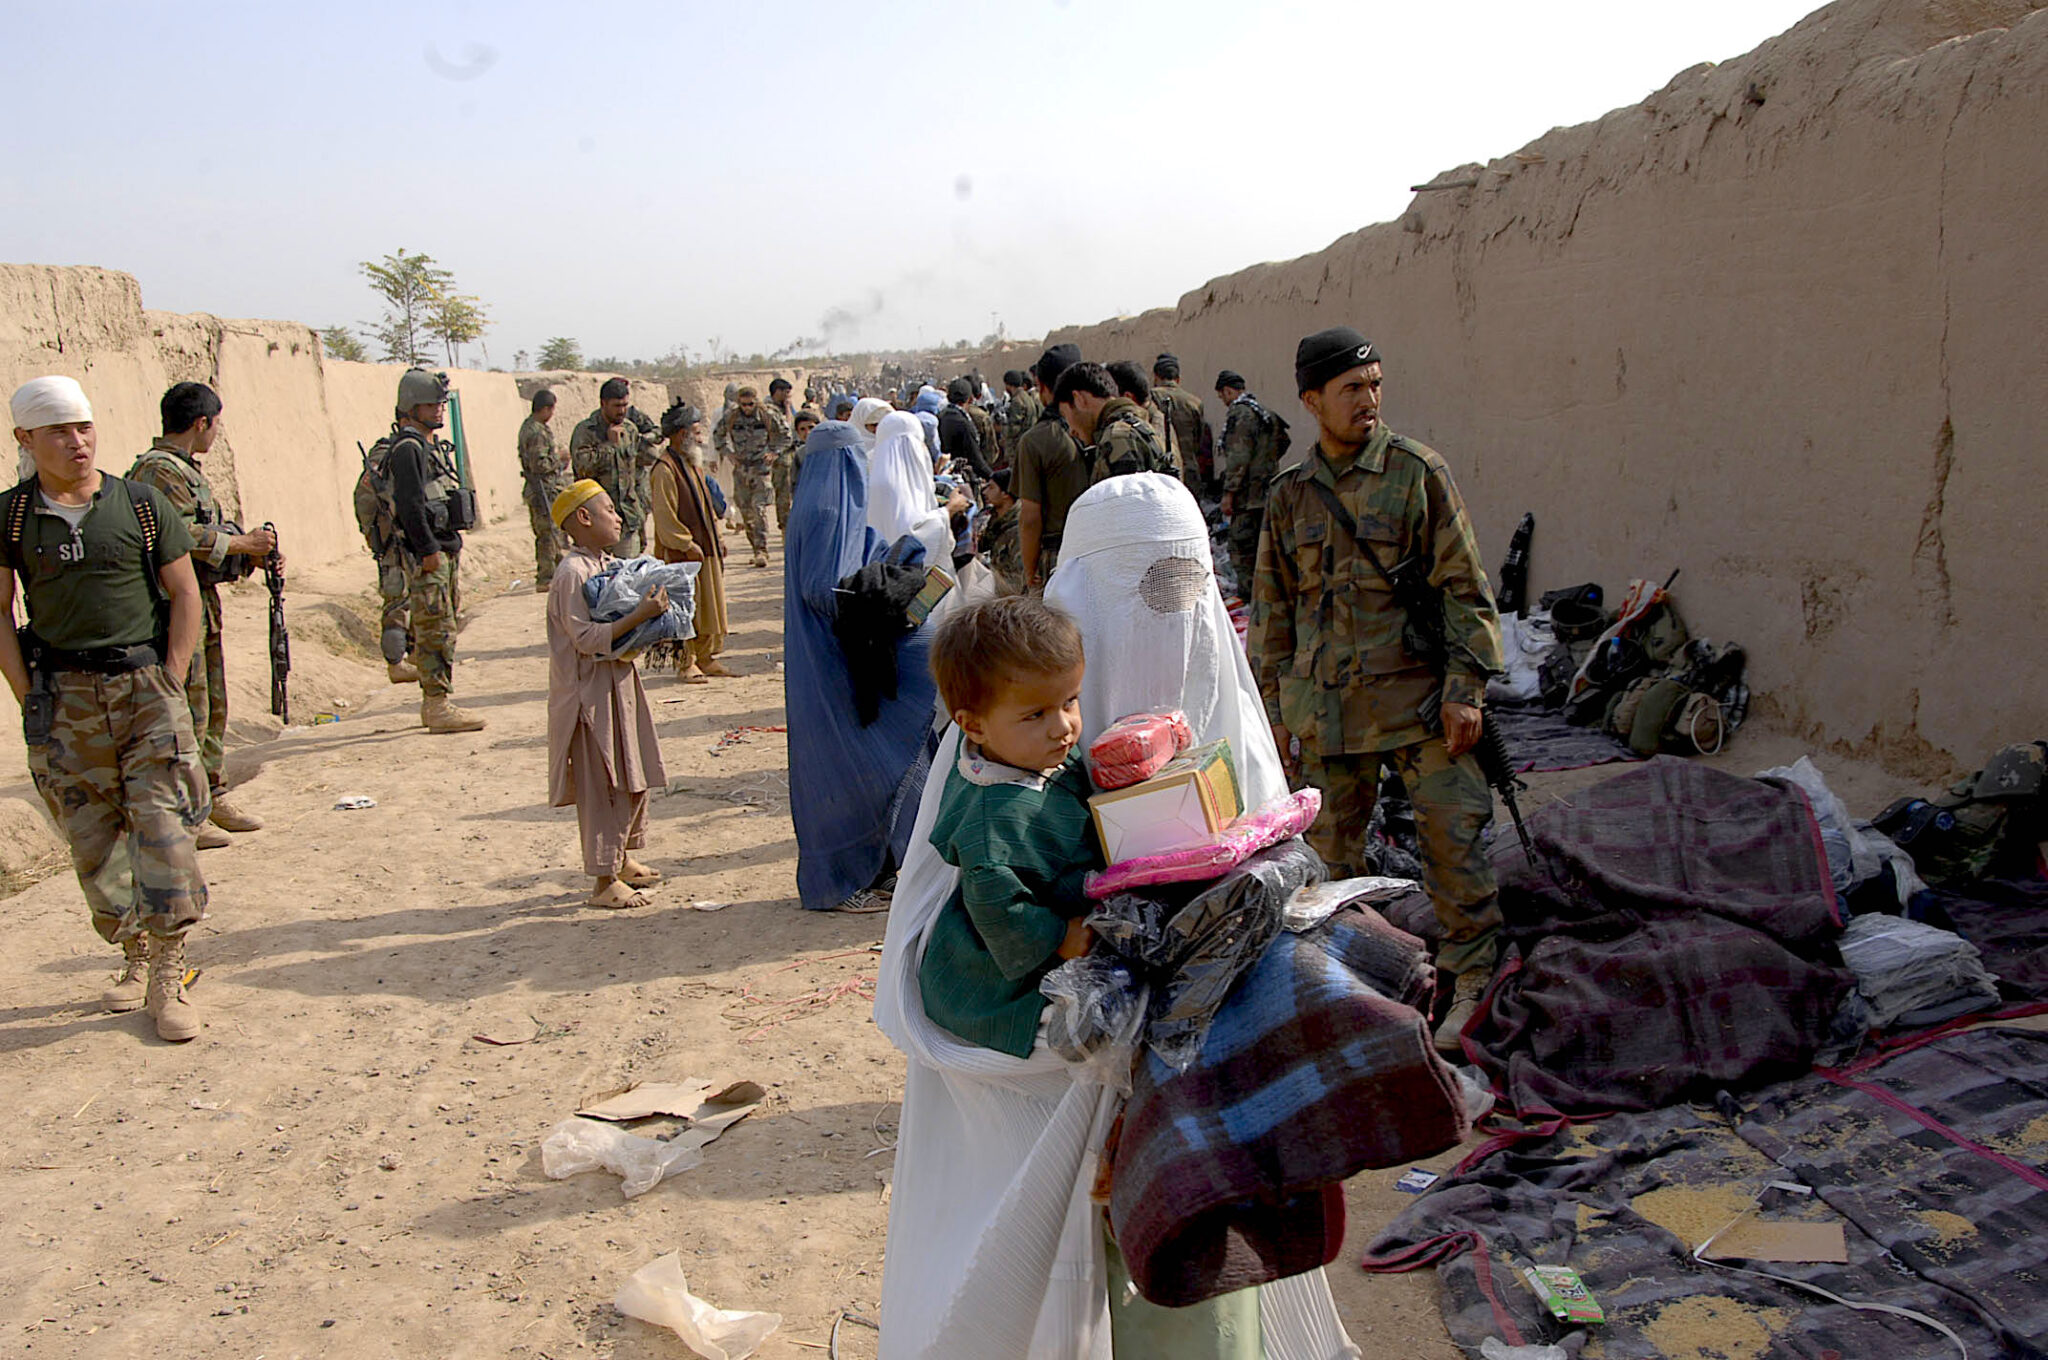 Afghan soldiers hand out supplies to Afghans who had been evicted from their villages by Taliban fighters in Konduz, Afghanistan, Nov. 6, 2009. (U.S. Army/Spc. Christopher Baker)